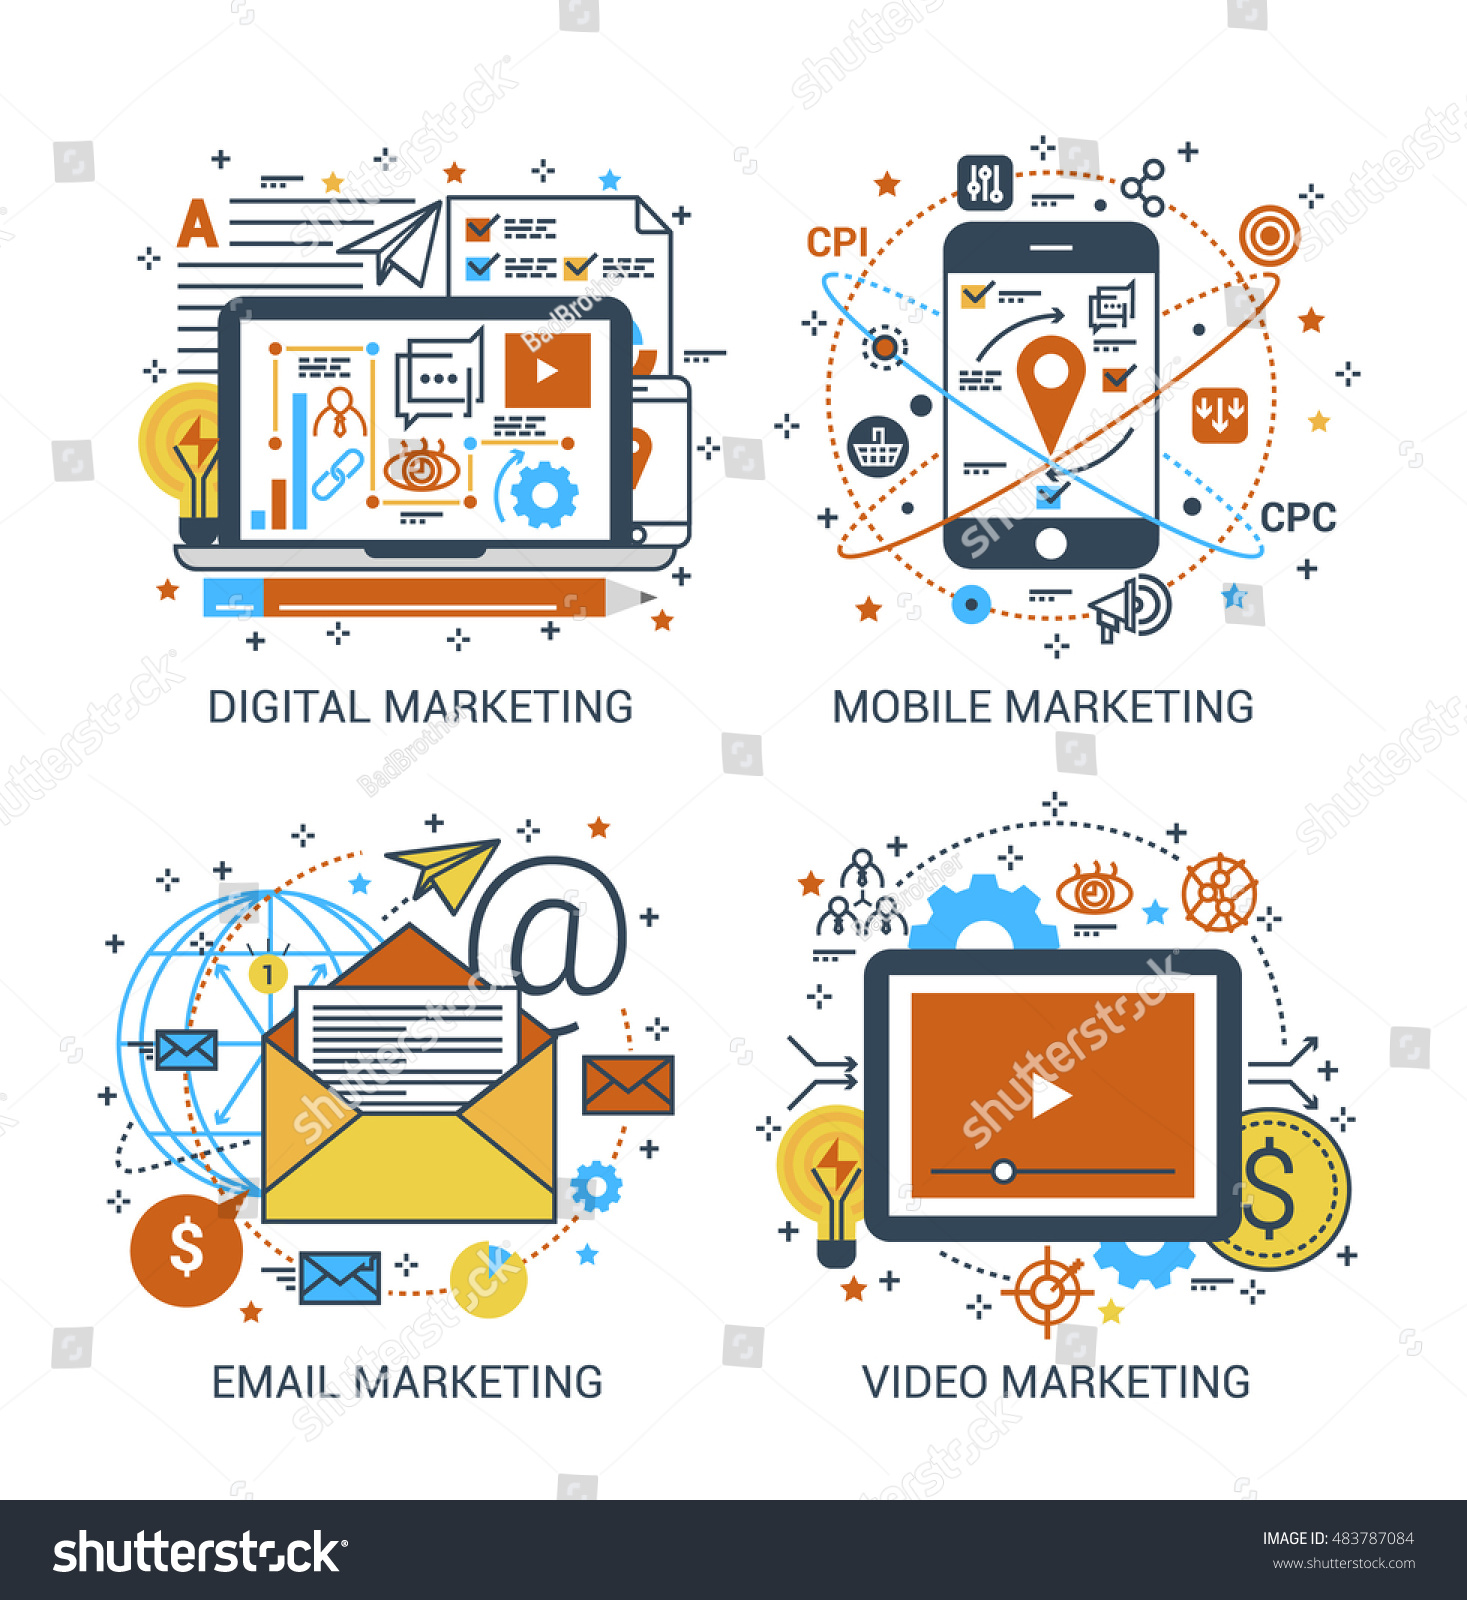 Thin Line Flat Design Concept Digital Stock Vector Royalty Free Remote Control Circuit Board Promotiononline Shopping For Promotional Of Marketing And Mobile Email Video